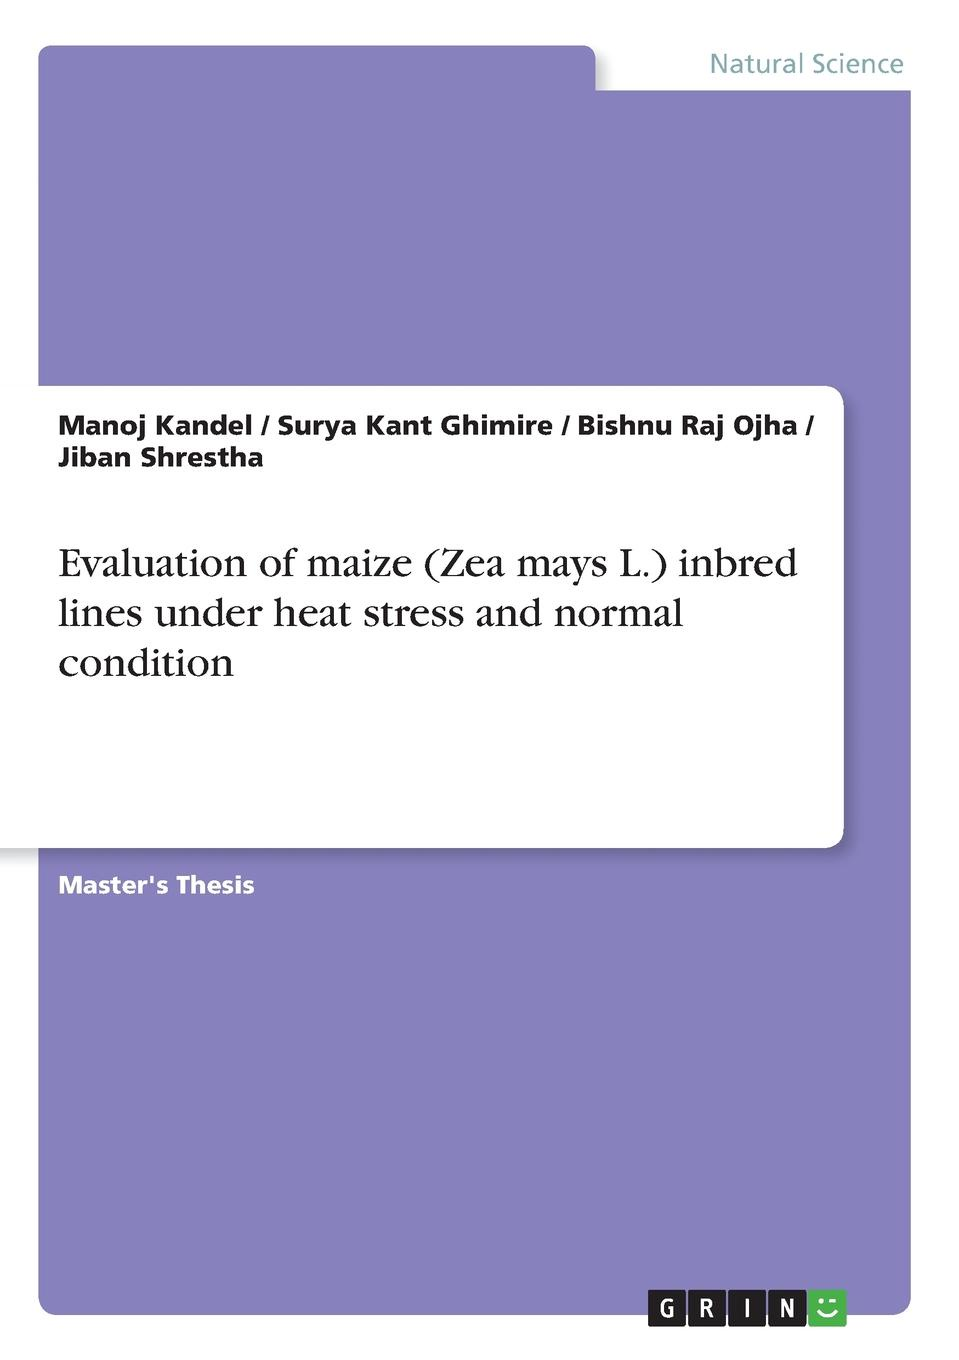 Manoj Kandel, Surya Kant Ghimire, Bishnu Raj Ojha Evaluation of maize (Zea mays L.) inbred lines under heat stress and normal condition parvaiz ahmad legumes under environmental stress yield improvement and adaptations